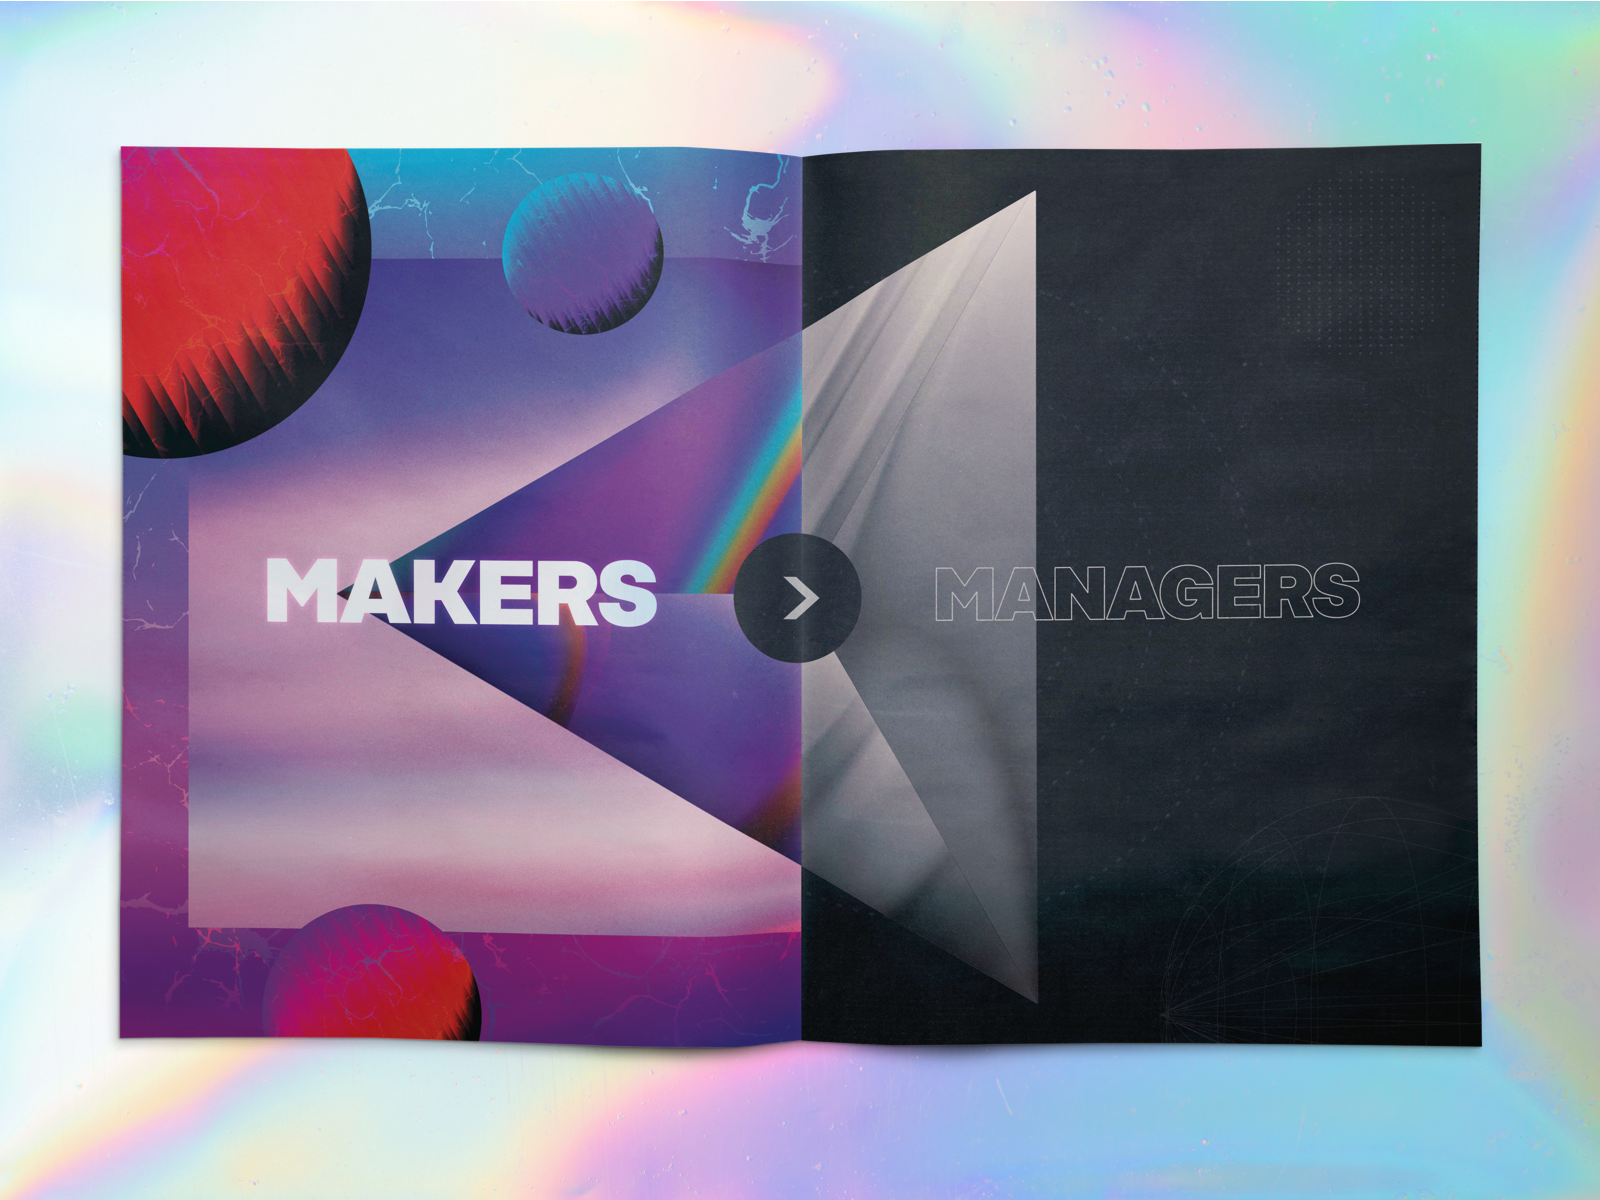 Makers > Managers 80s print illustration gradients vaporwave mailer marketing development design chicago makers